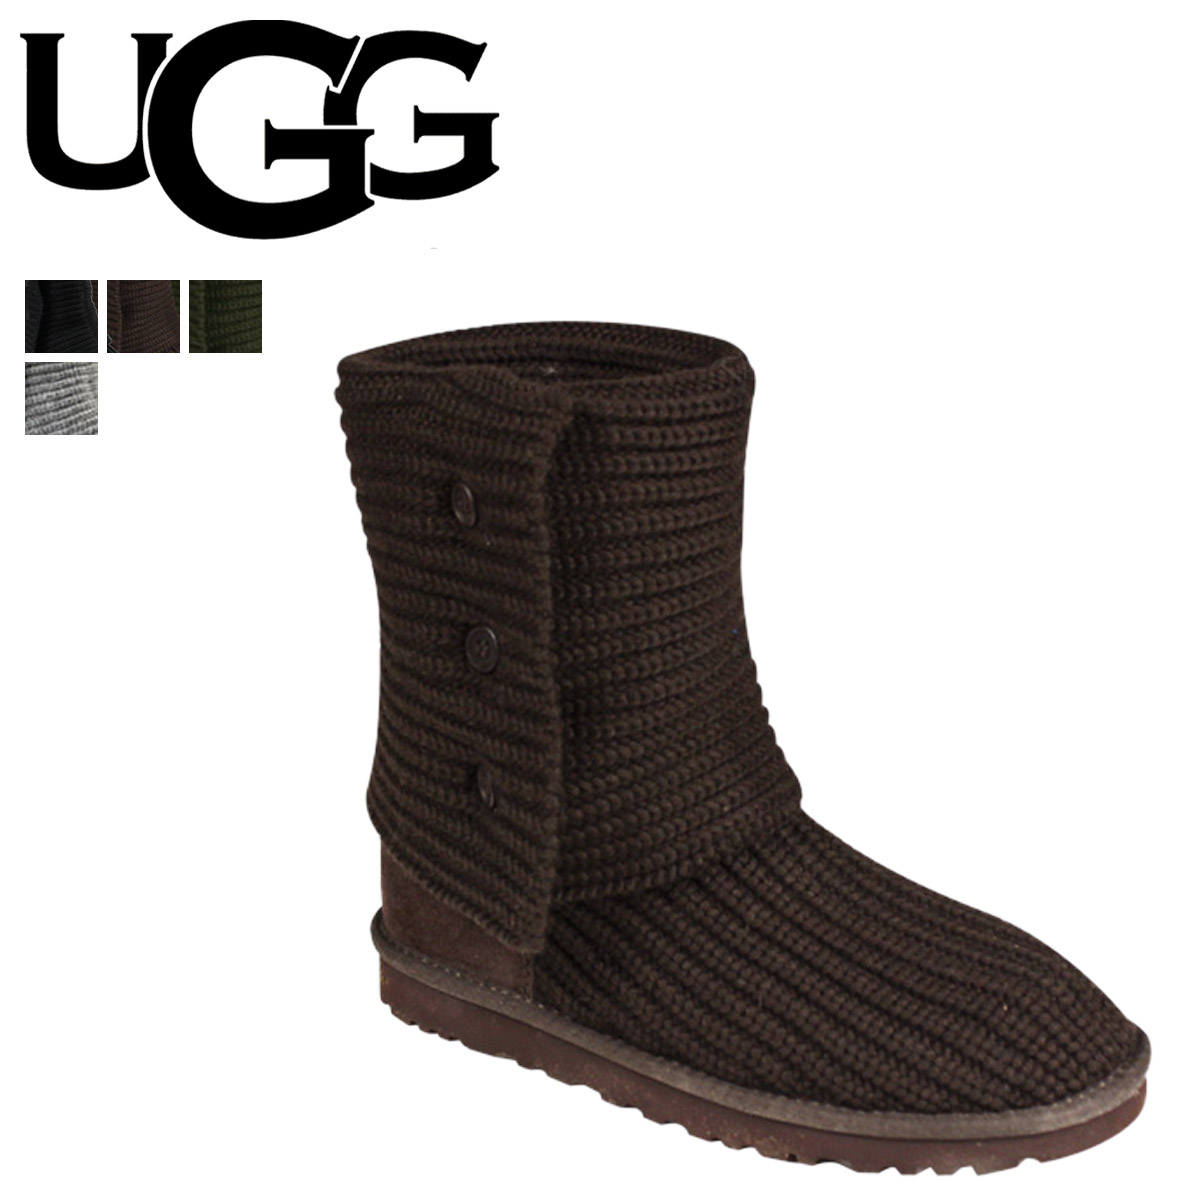 be8f50b0289 UGG UGG womens classic Cardy boots 5819 WOMENS CLASSIC CARDY Womens  Sheepskin